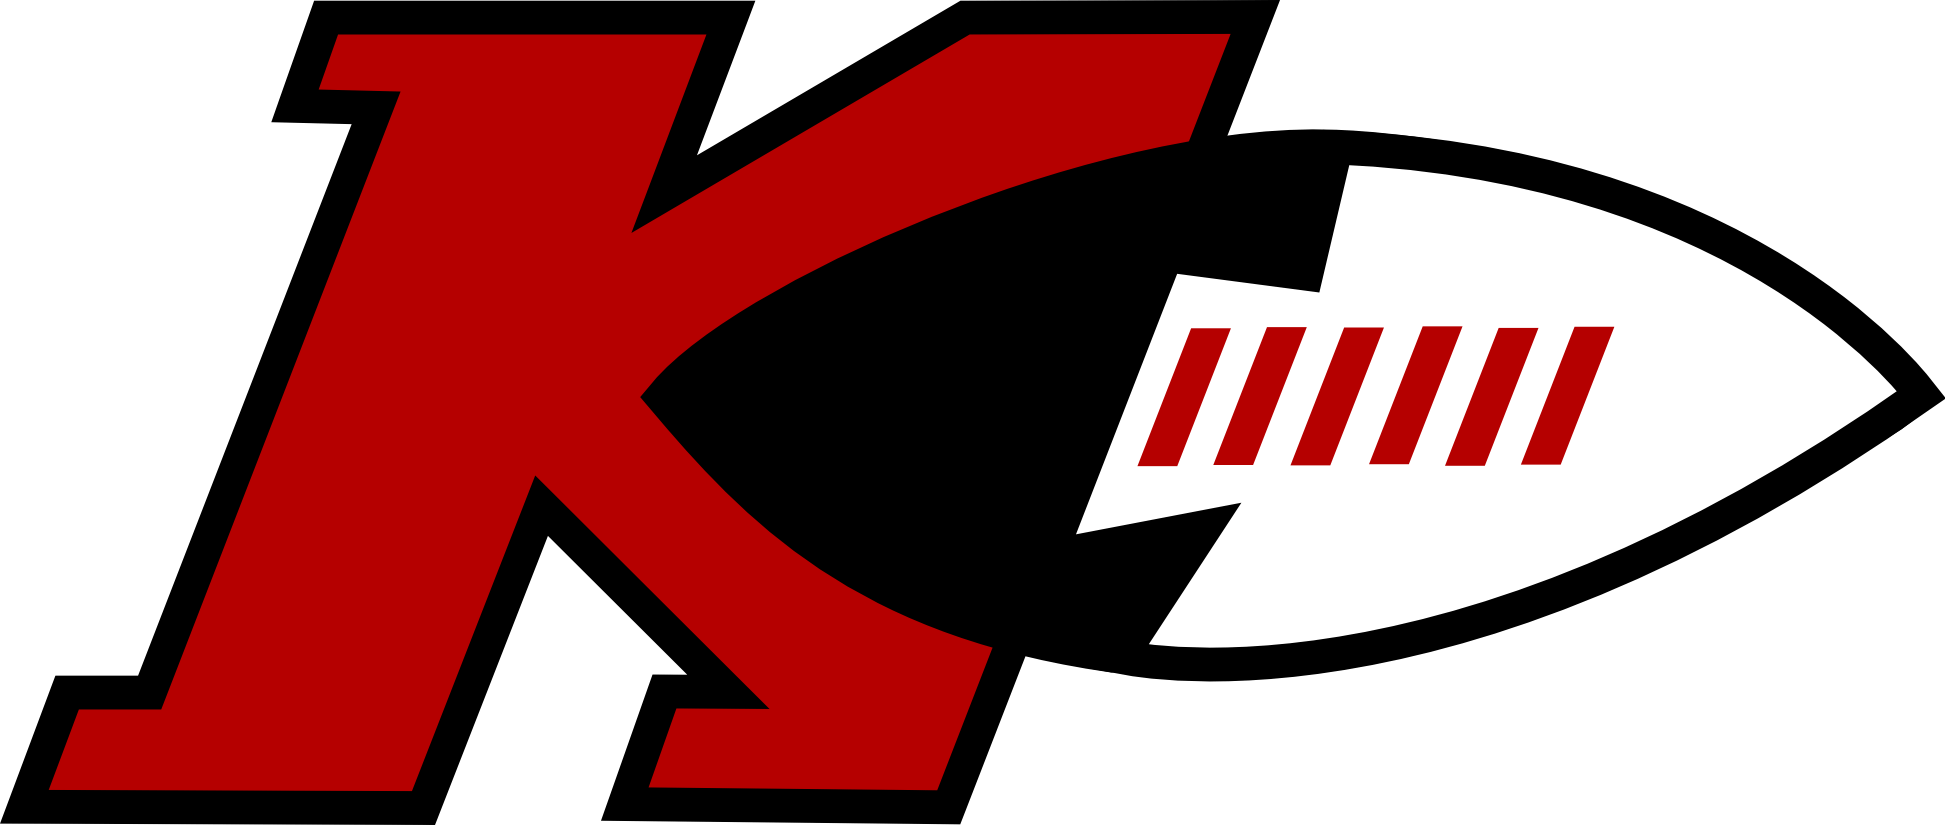 """The team nickname is """"redwood forest"""" and their mascot. Kansas City Chiefs 1970's """"New"""" Logo (Inkscape) - Concepts ..."""